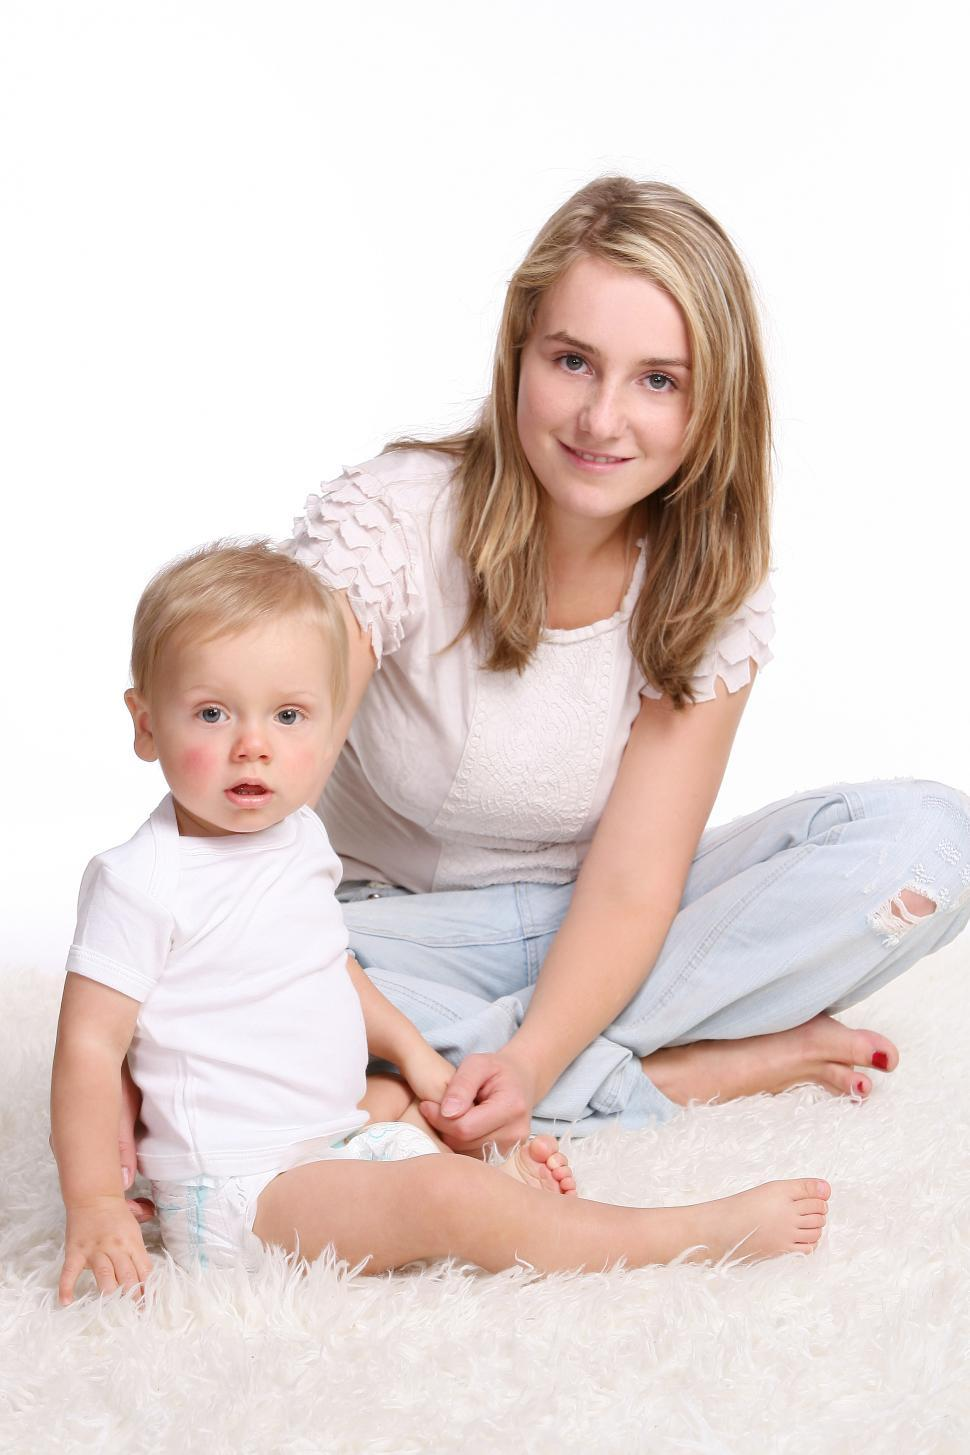 Download Free Stock Photo of a young mother with kid